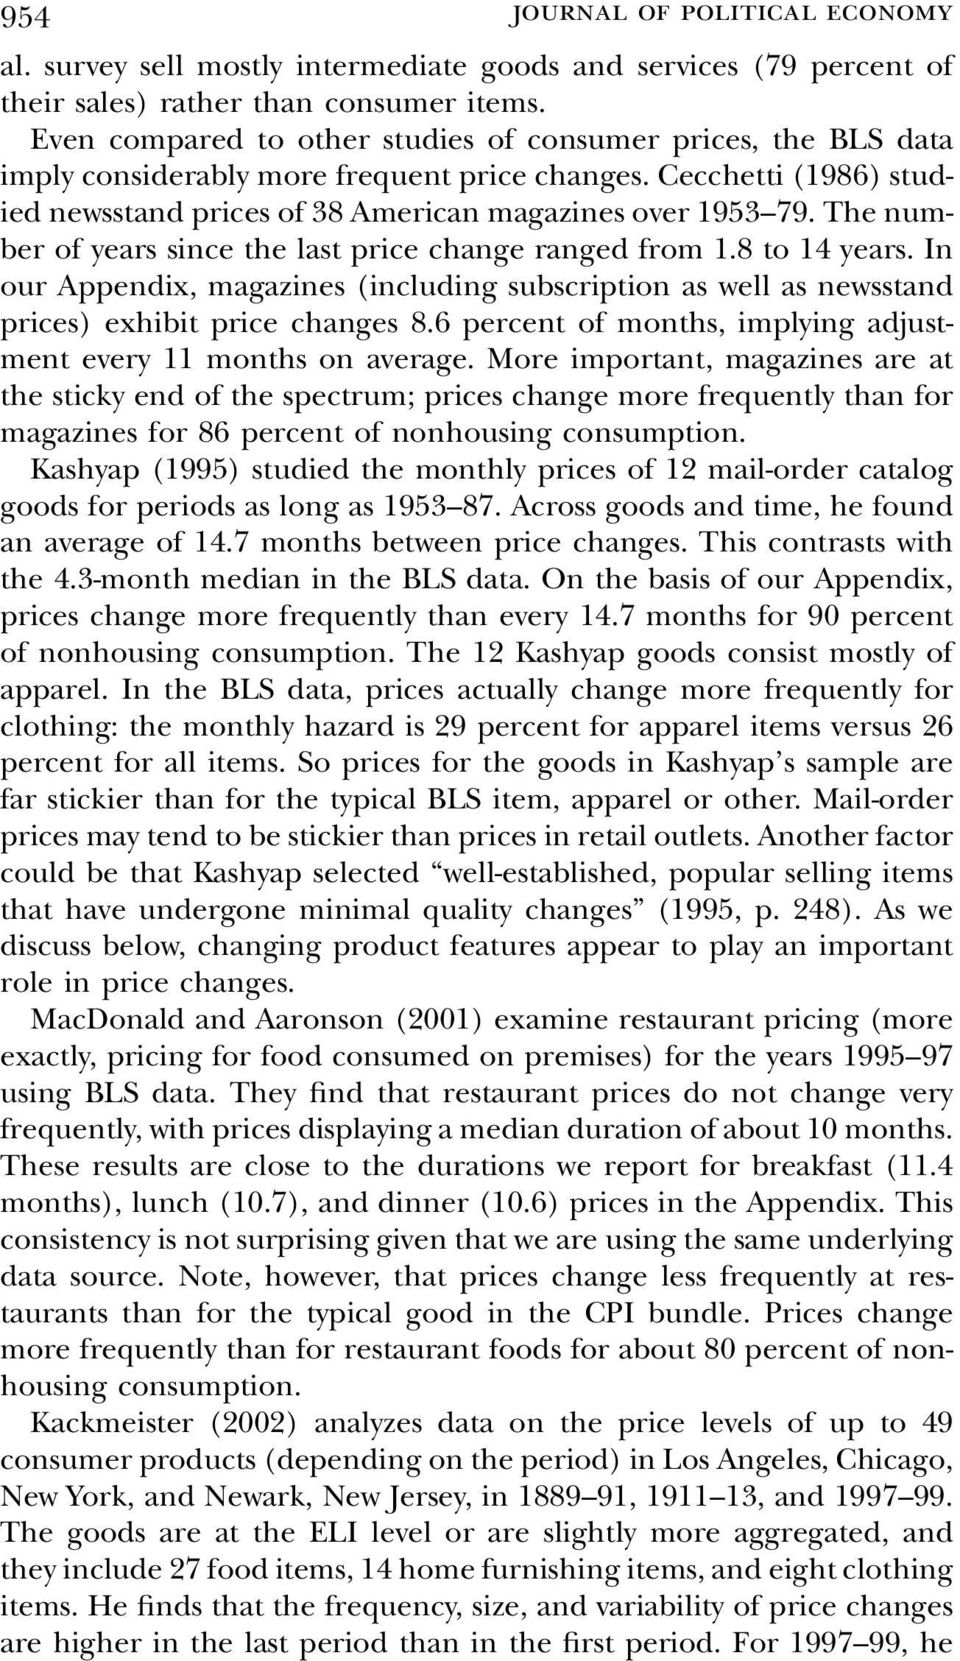 The number of years since the last price change ranged from 1.8 to 14 years. In our Appendix, magazines (including subscription as well as newsstand prices) exhibit price changes 8.